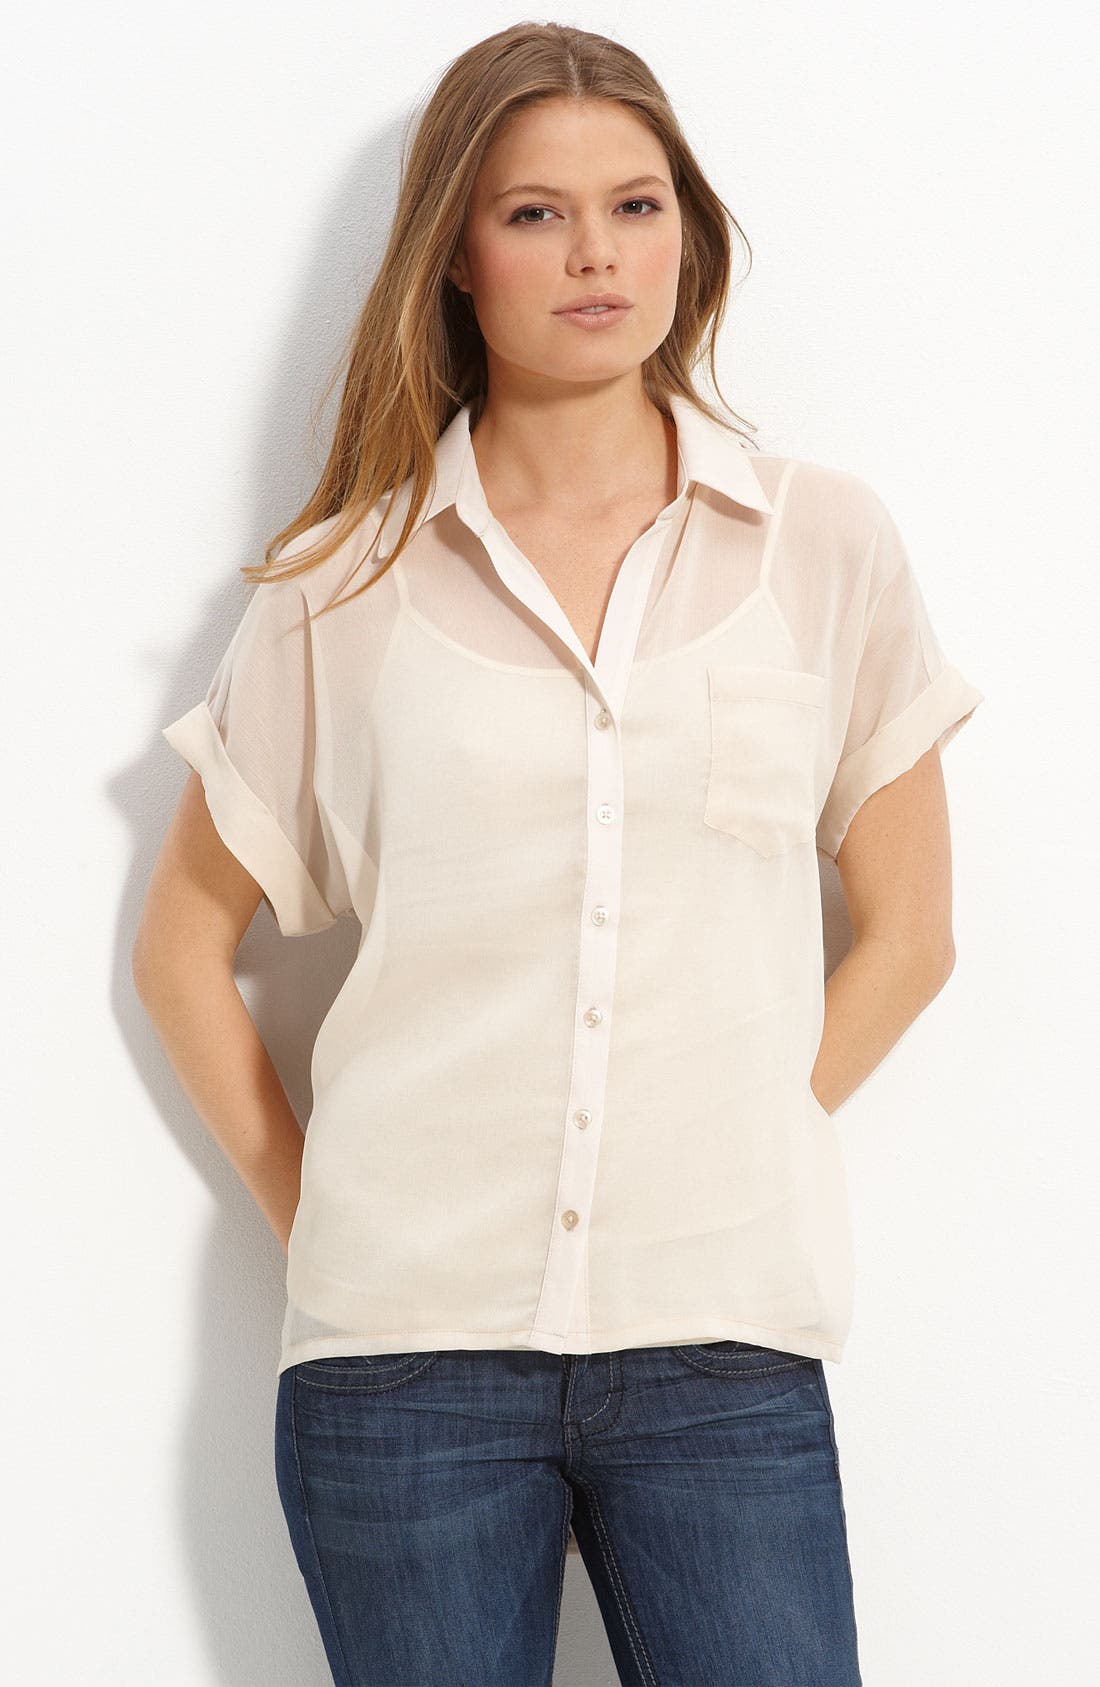 Alternate Image 1 Selected - Lush Sheer High-Low Hem Shirt (Juniors)